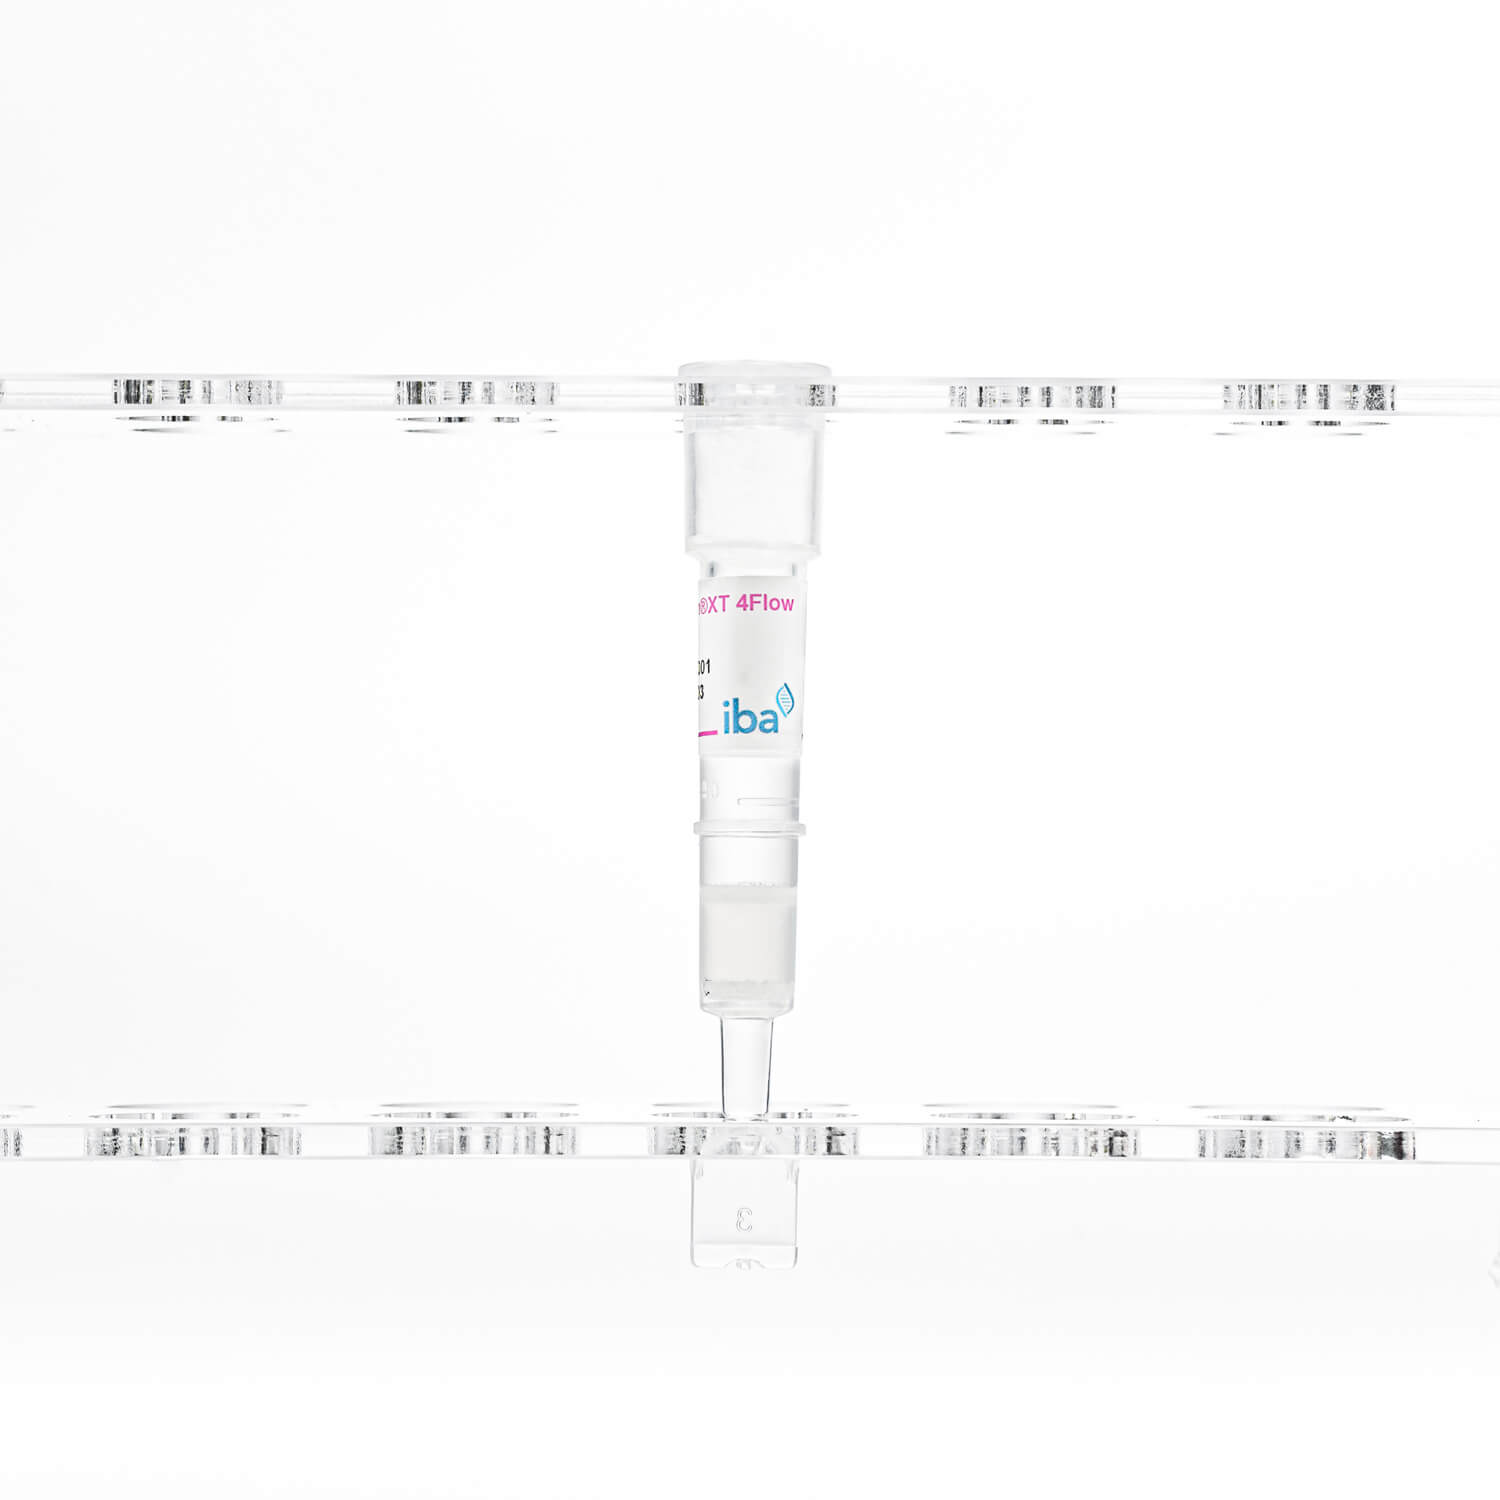 Strep-Tactin®XT 4Flow® column